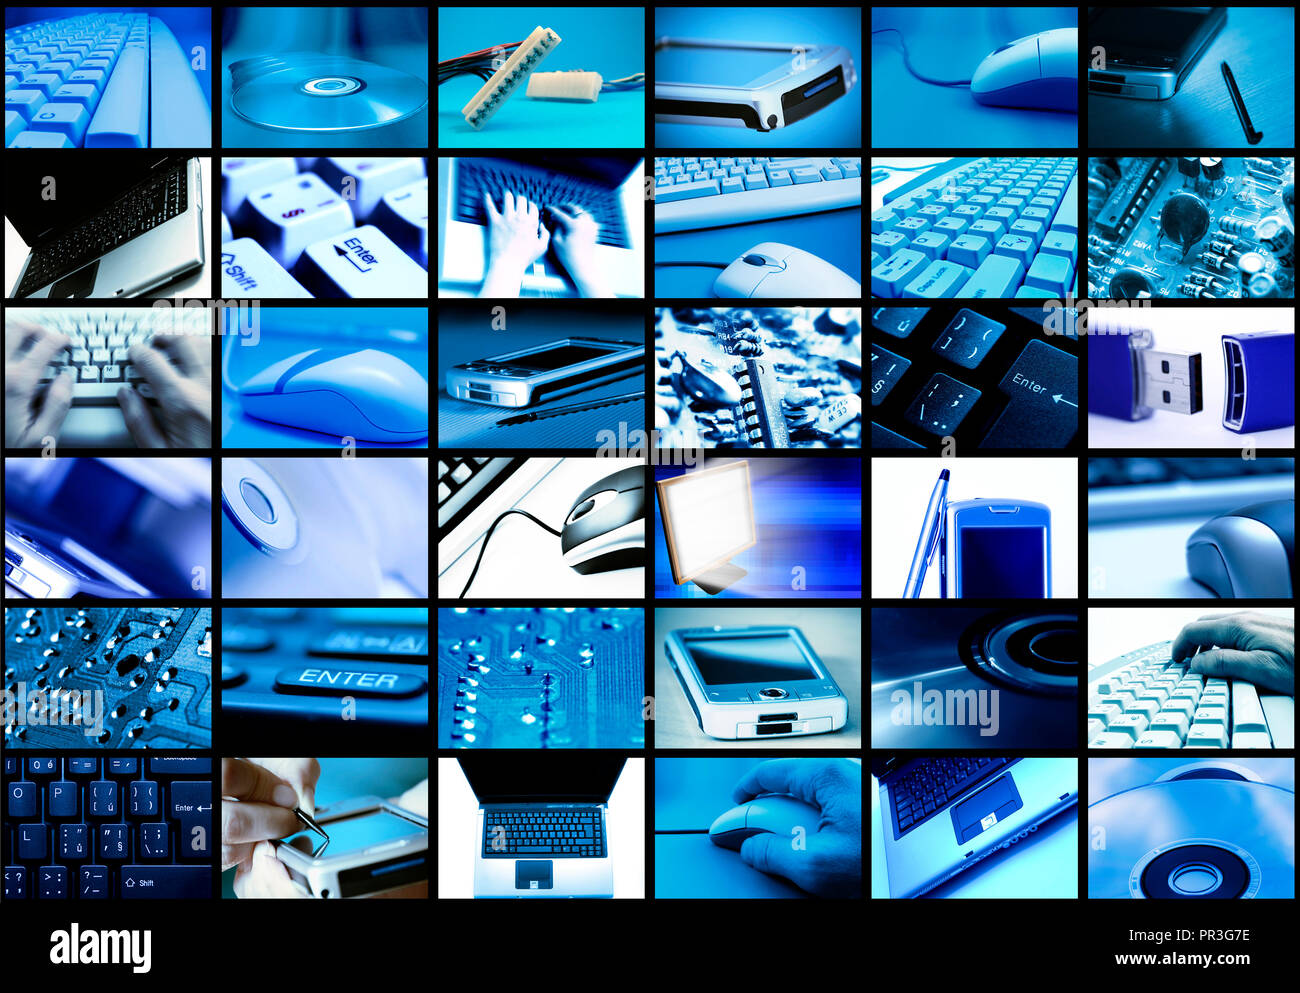 screen made of many screens with technology images - Stock Image